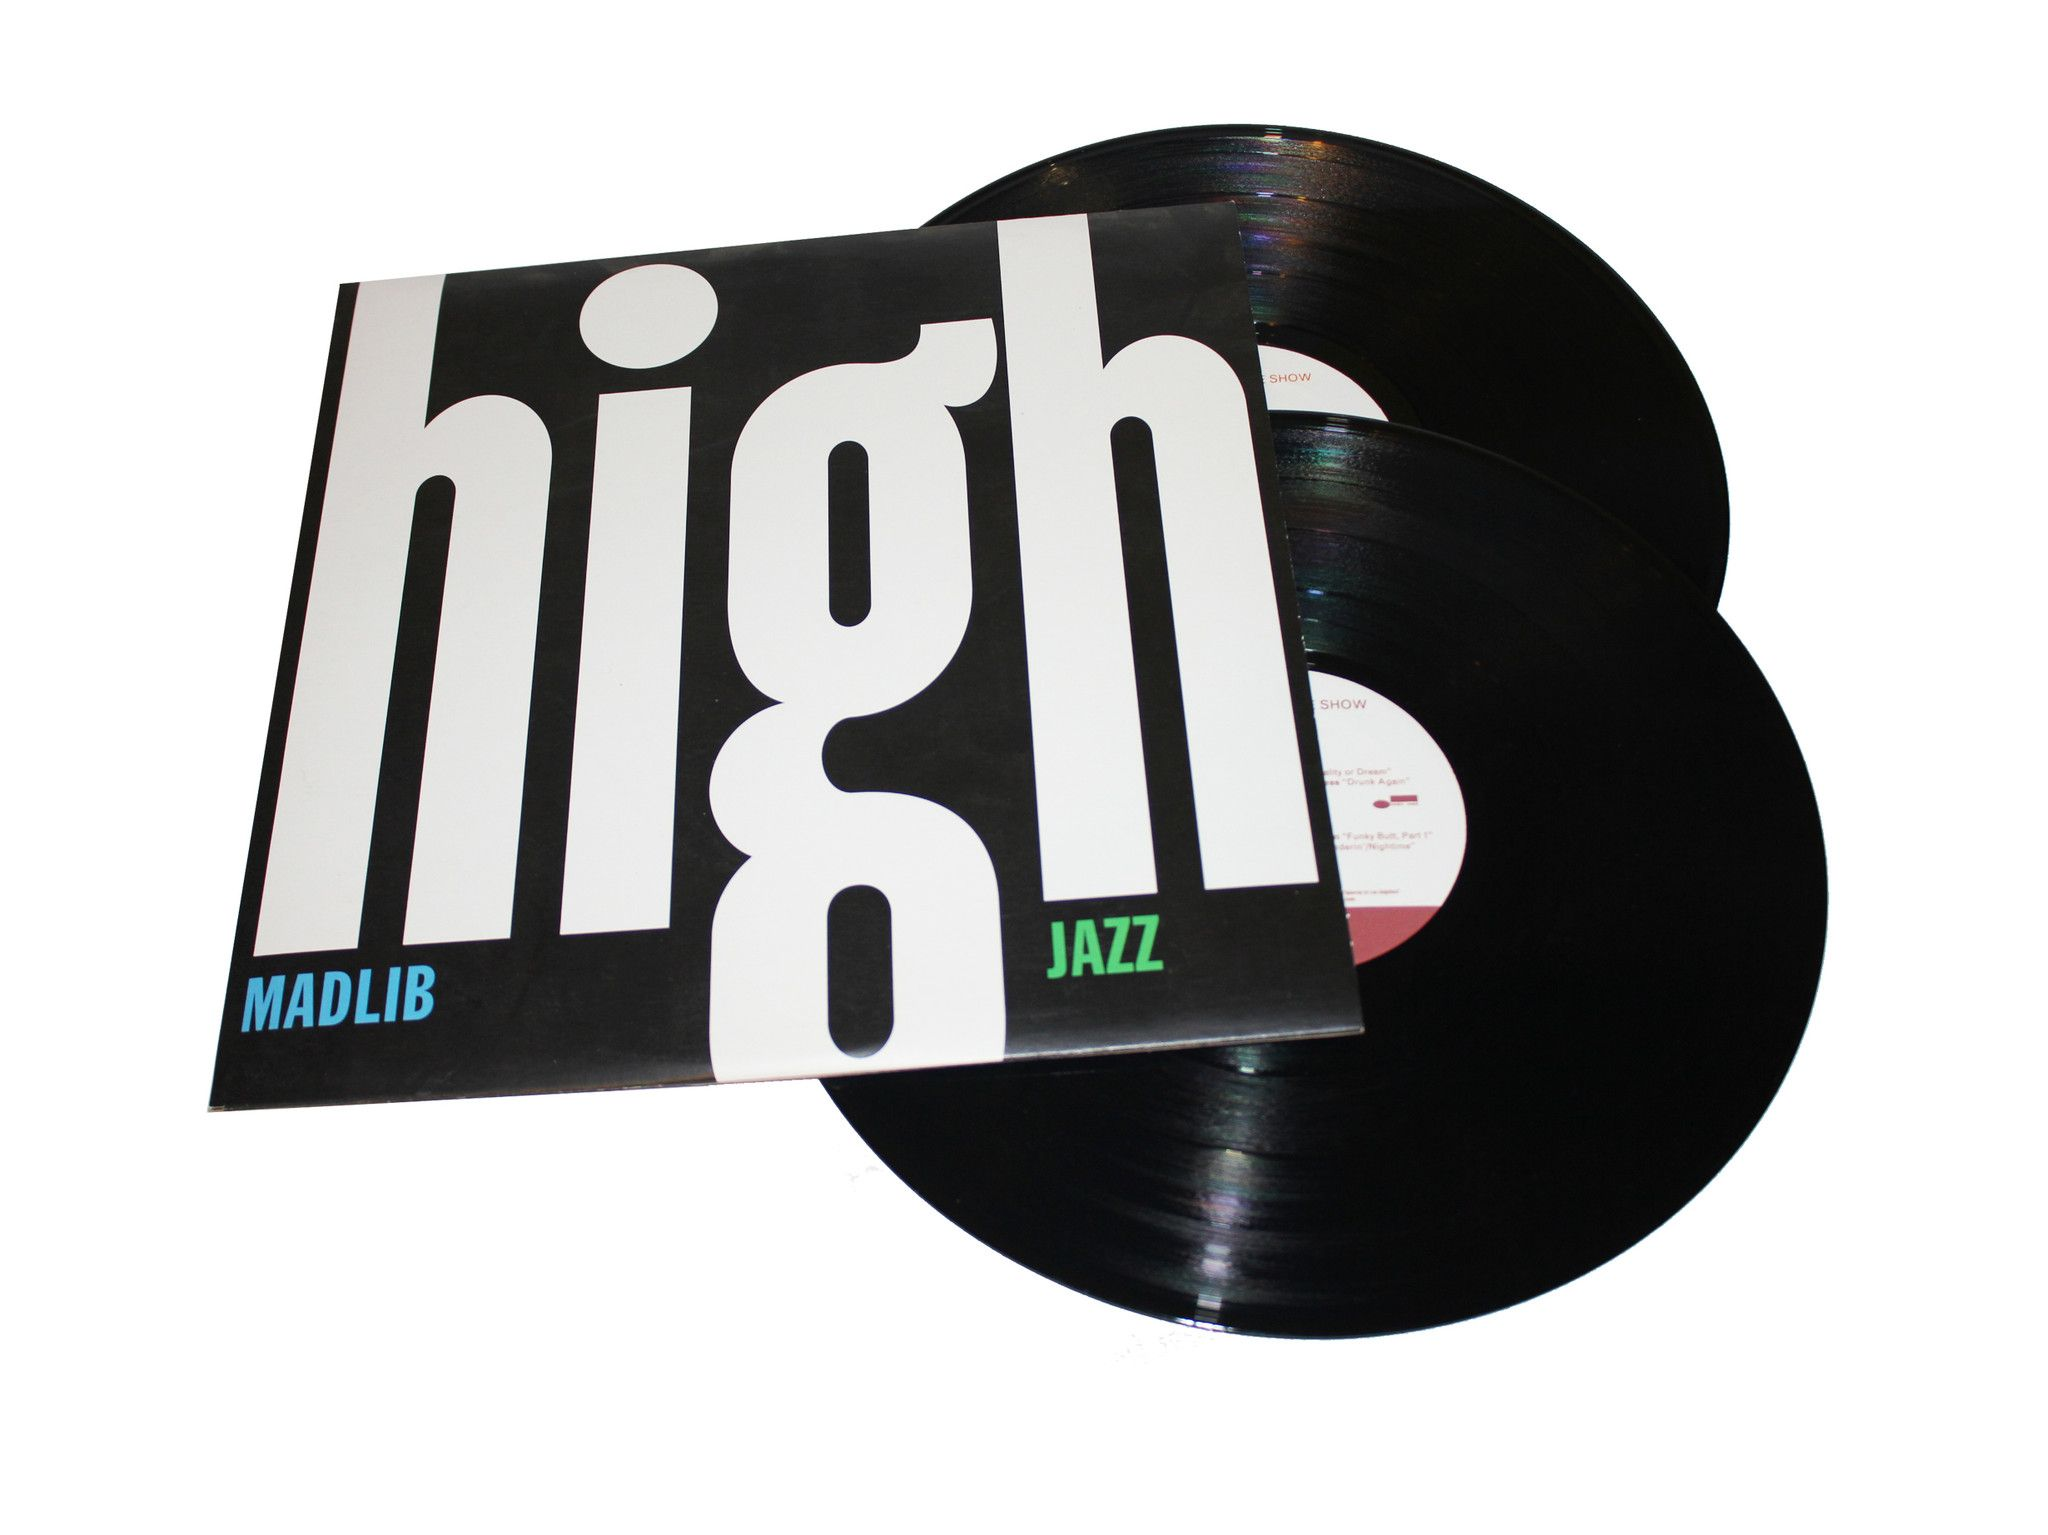 Madlib - High Jazz..  for the real jazz heads..